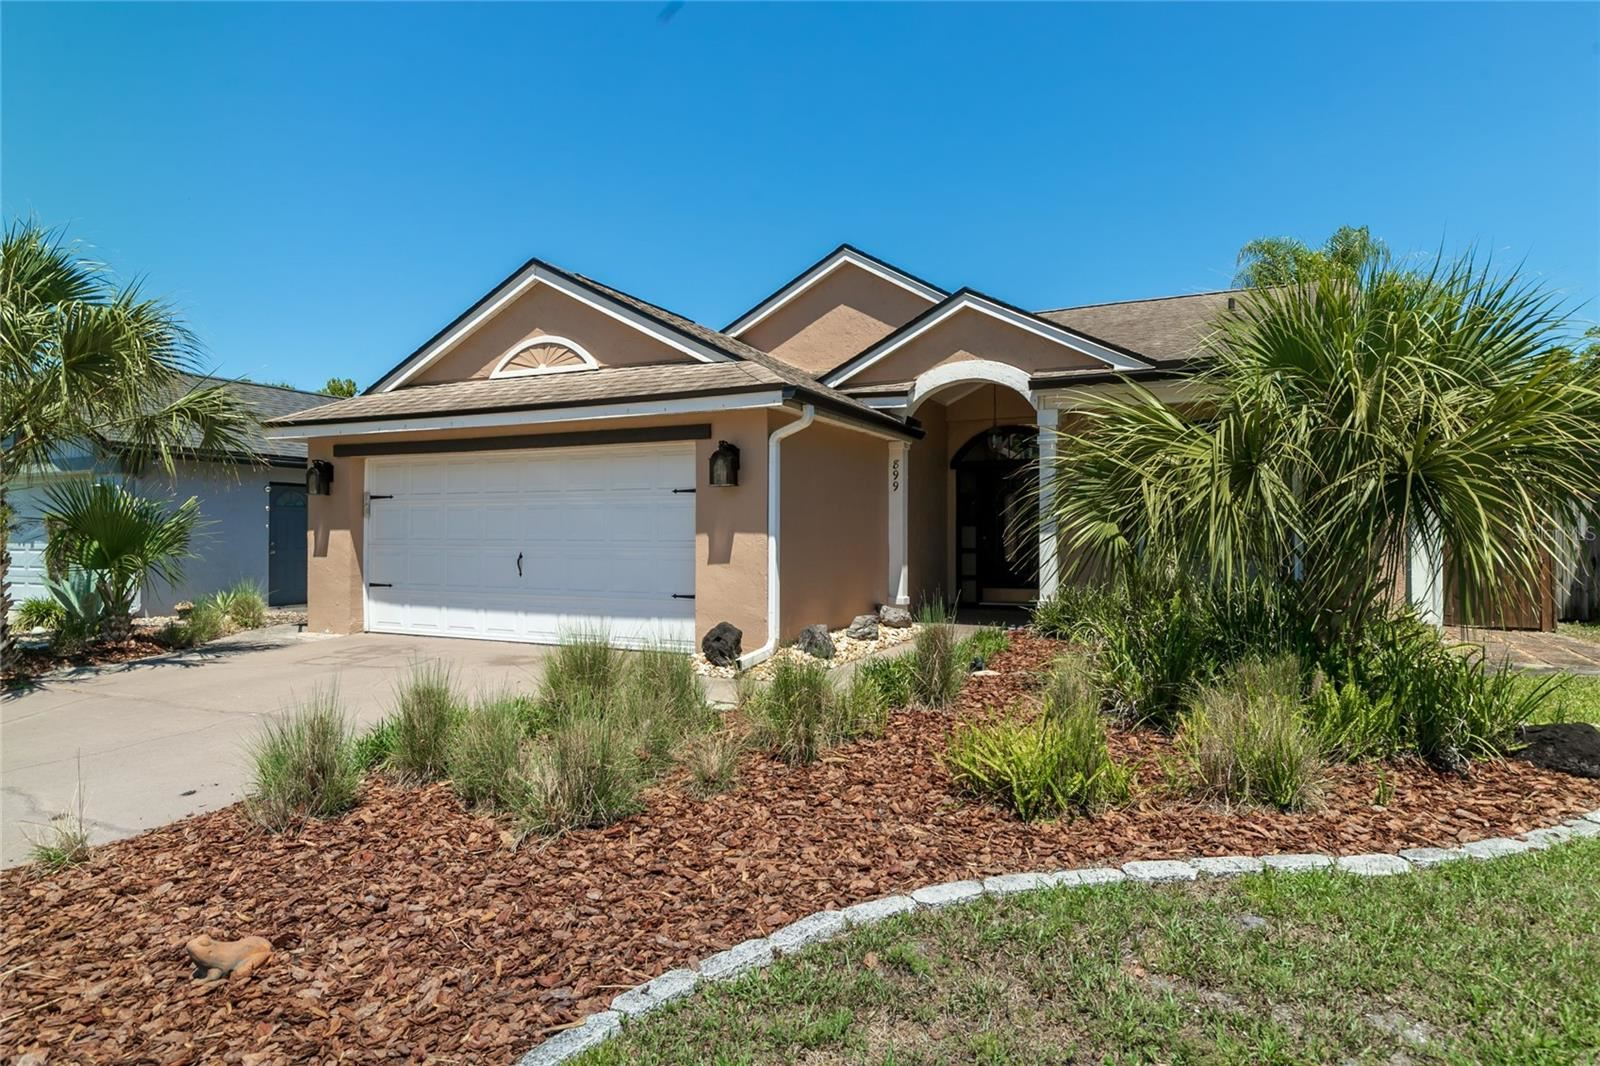 899 E CHARING CROSS CIRCLE, Lake Mary, FL 32746 - #: O5943103